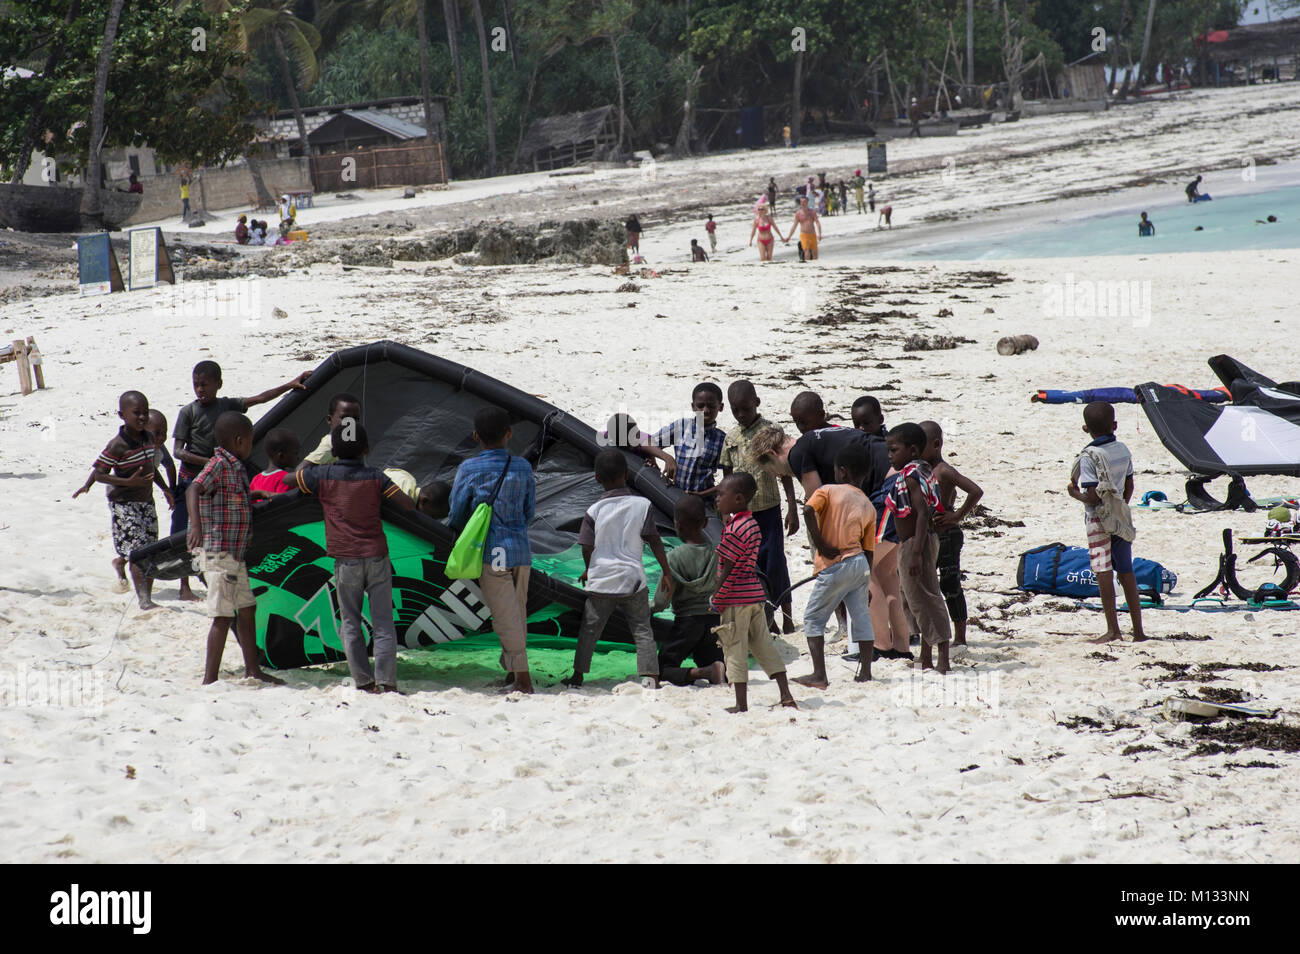 mobs of local Swahili children descend upon a kite surfer on the beach in Nungwi, Zanzibar, Tanzania, as he sets - Stock Image